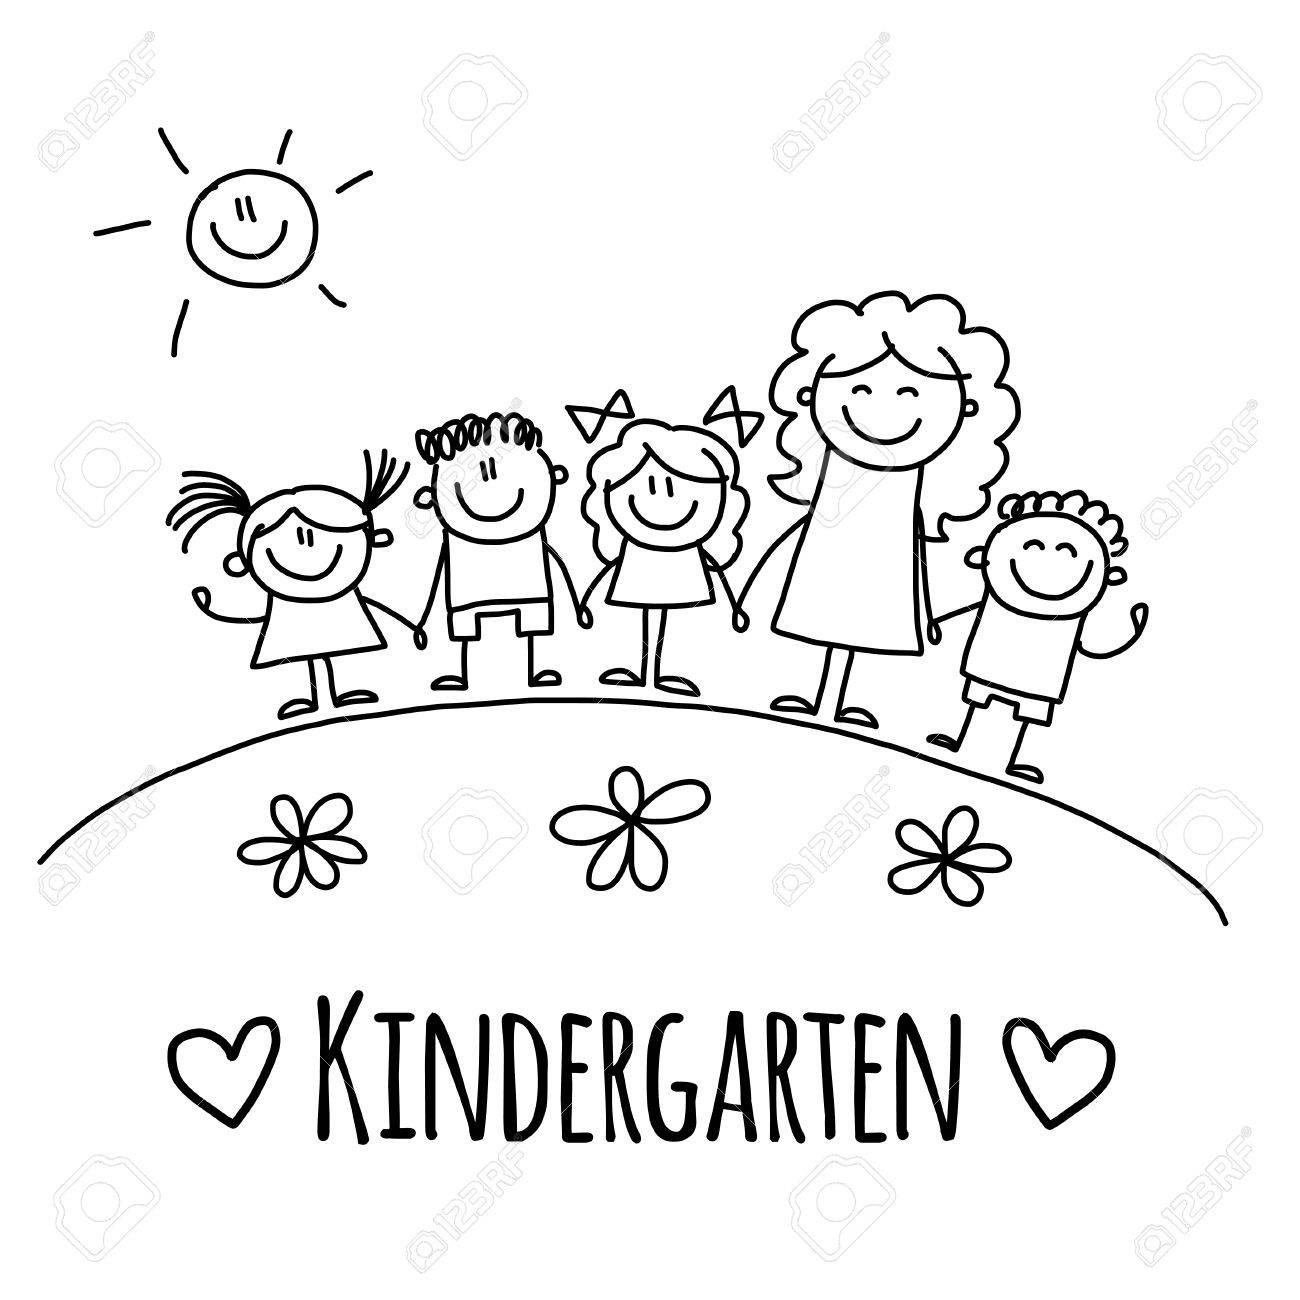 Image With Kindergarten Or School Kids Hand Drawn Picture Royalty ...